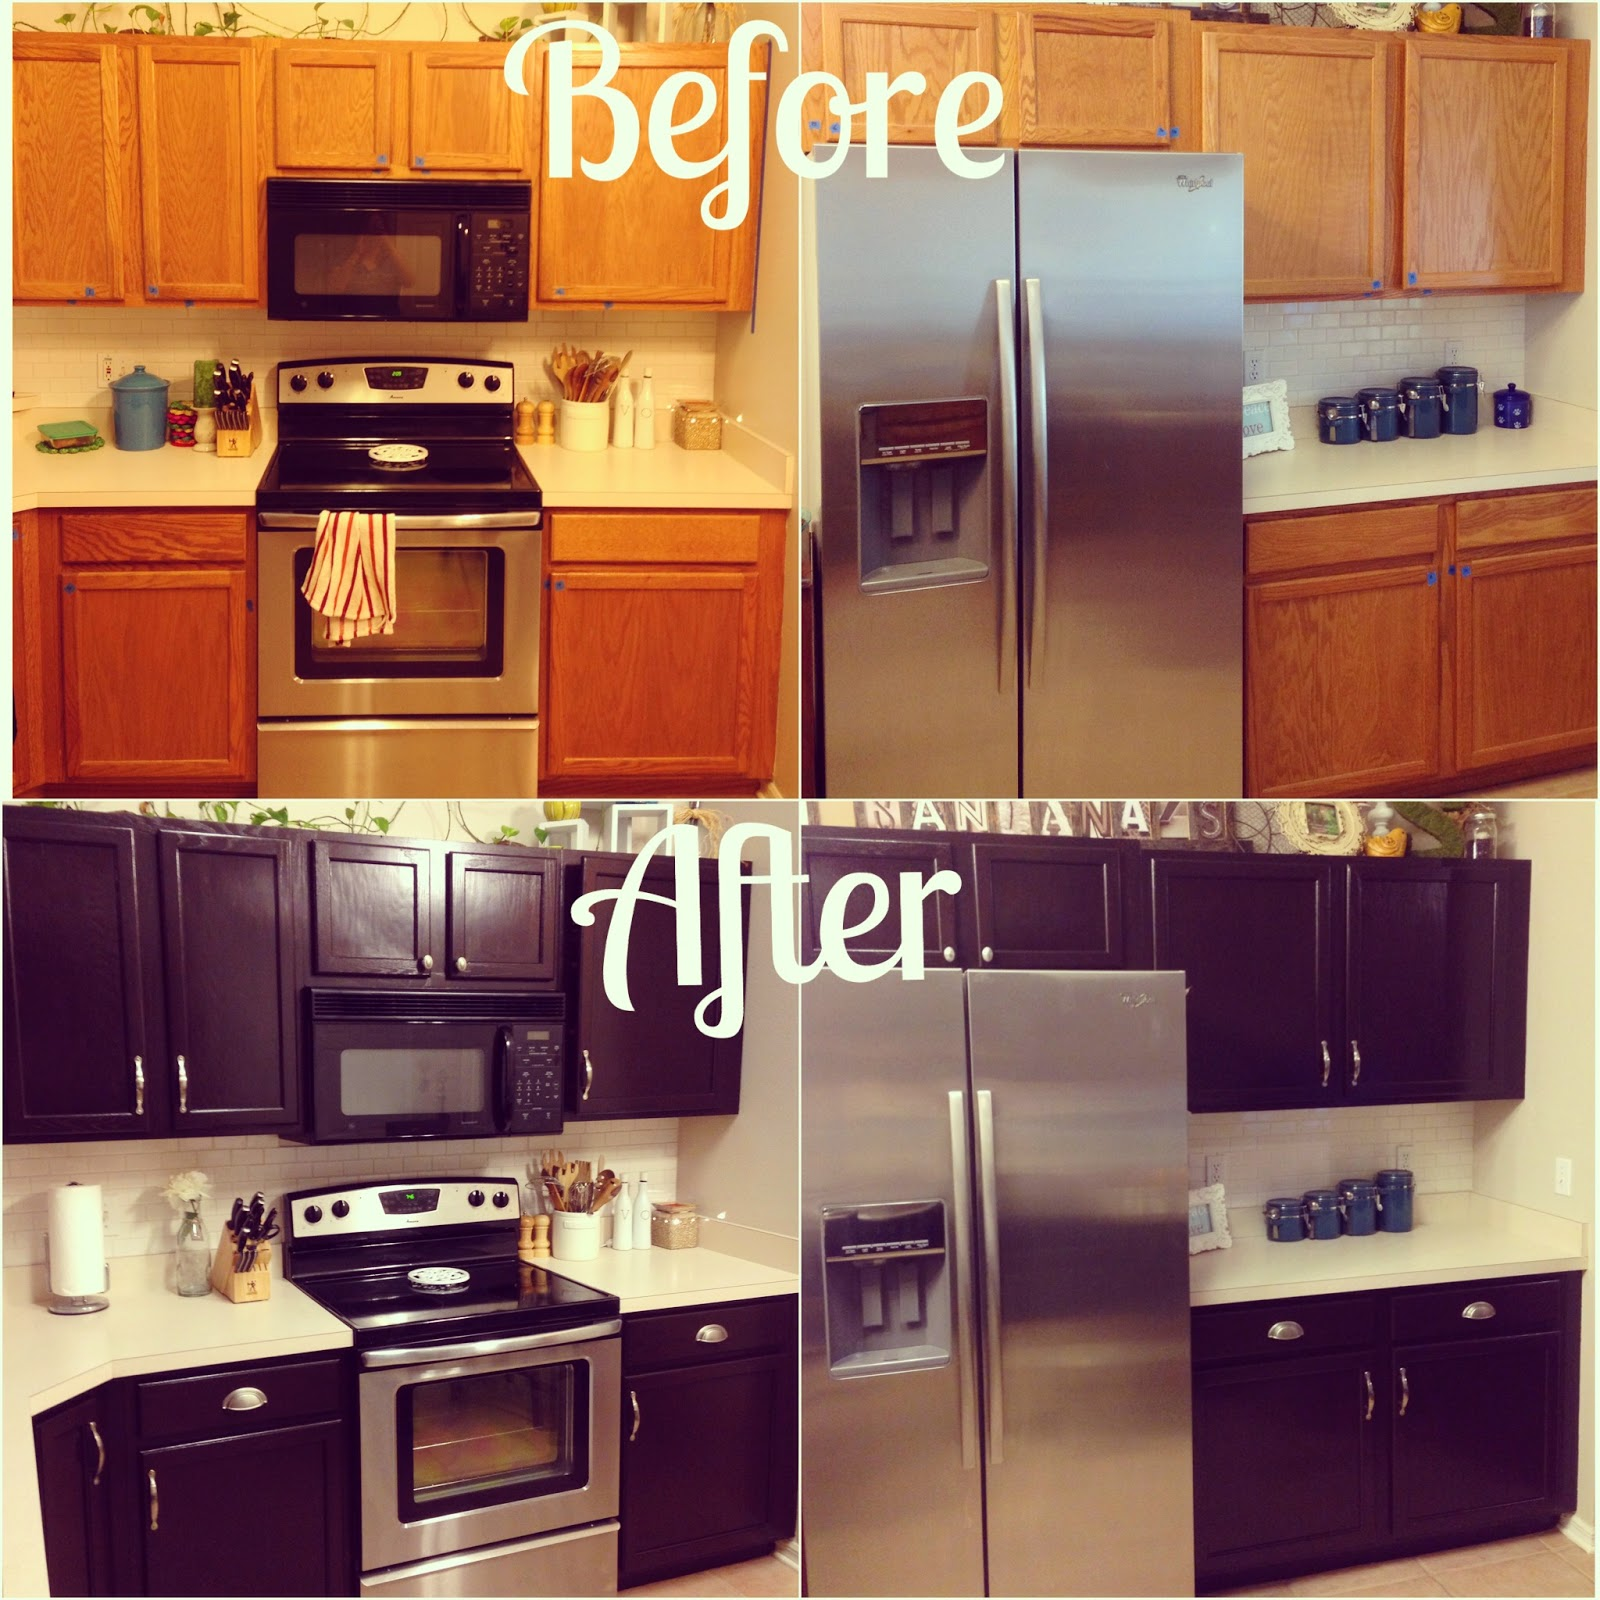 Kitchen Cabinet Makeover Ideas: Kitchen Makeover For $100!